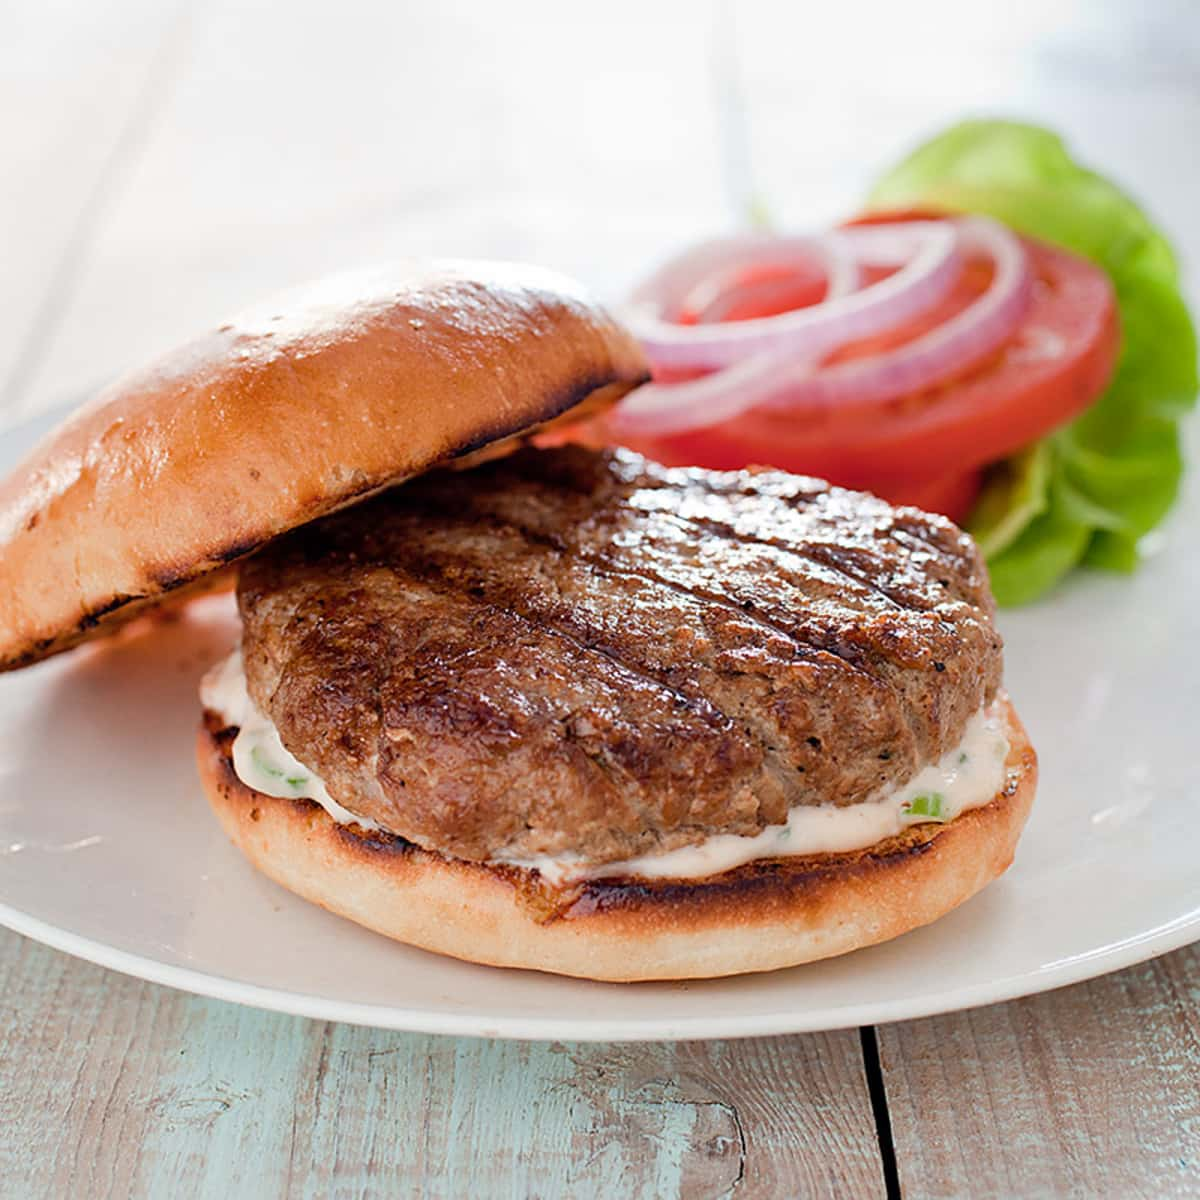 Best way to cook turkey burgers without a grill